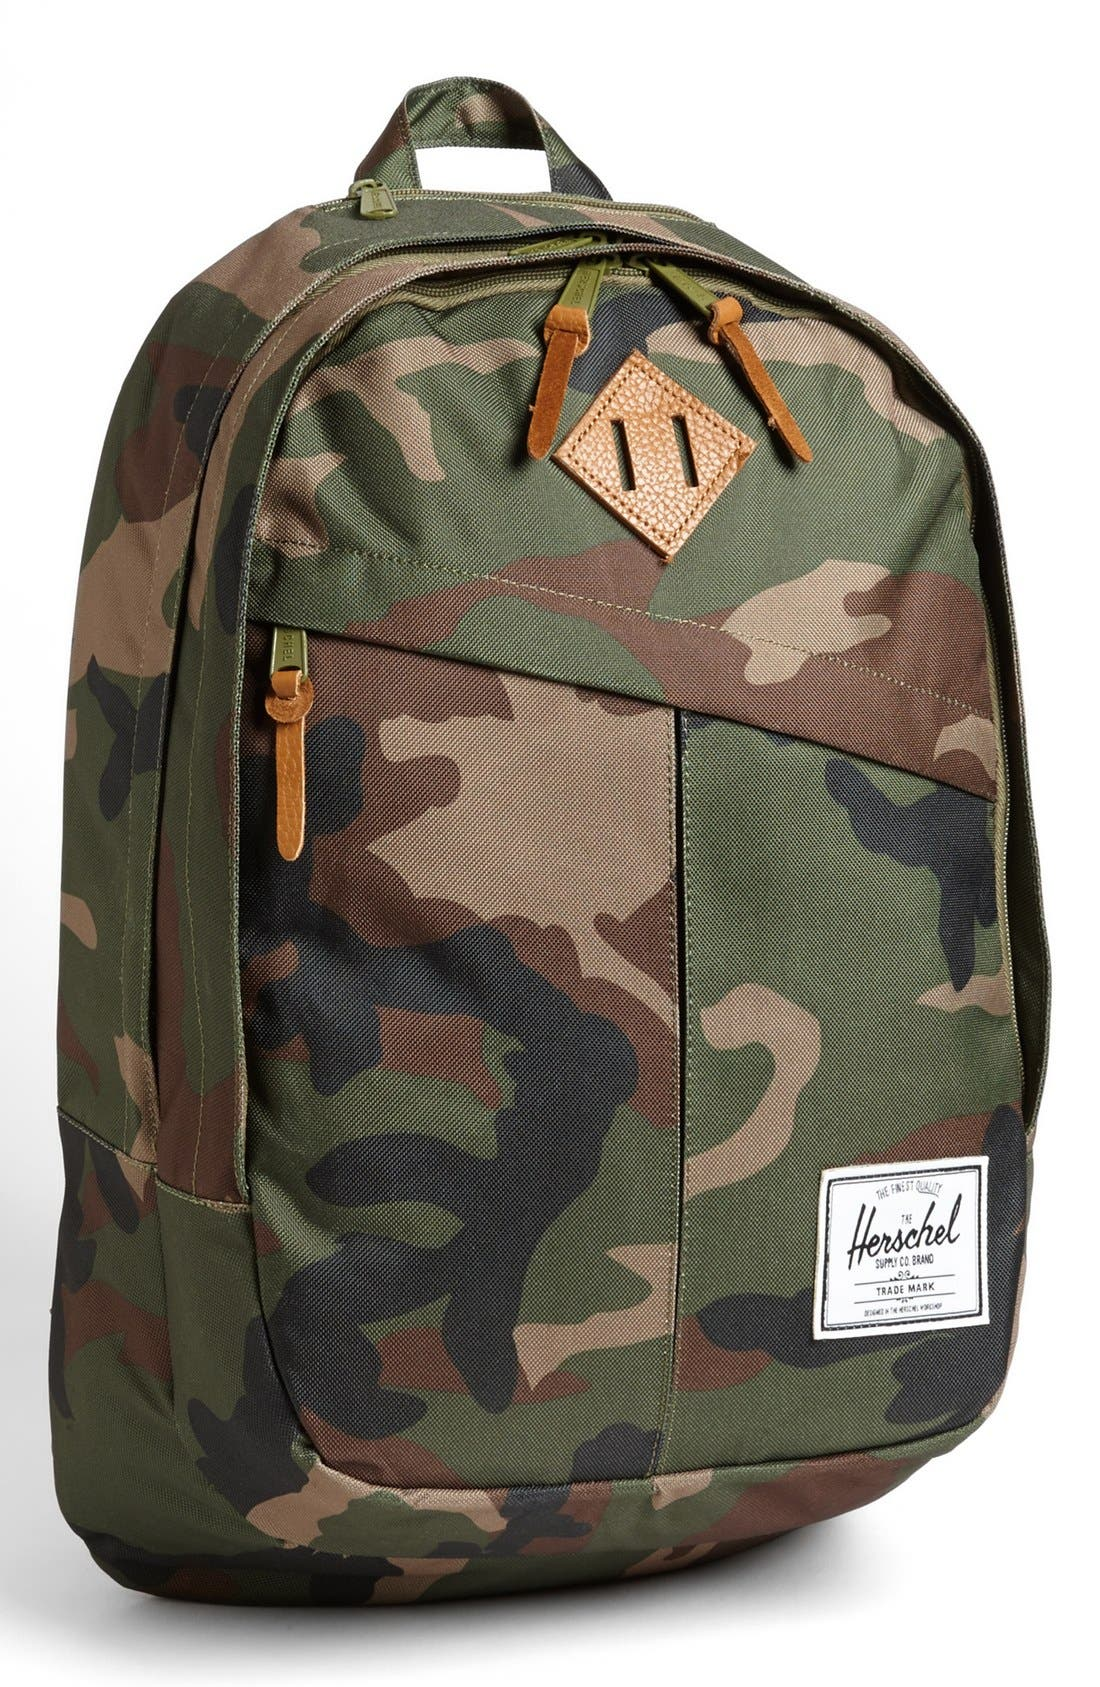 Main Image - Herschel Supply Co. 'Sierra' Backpack